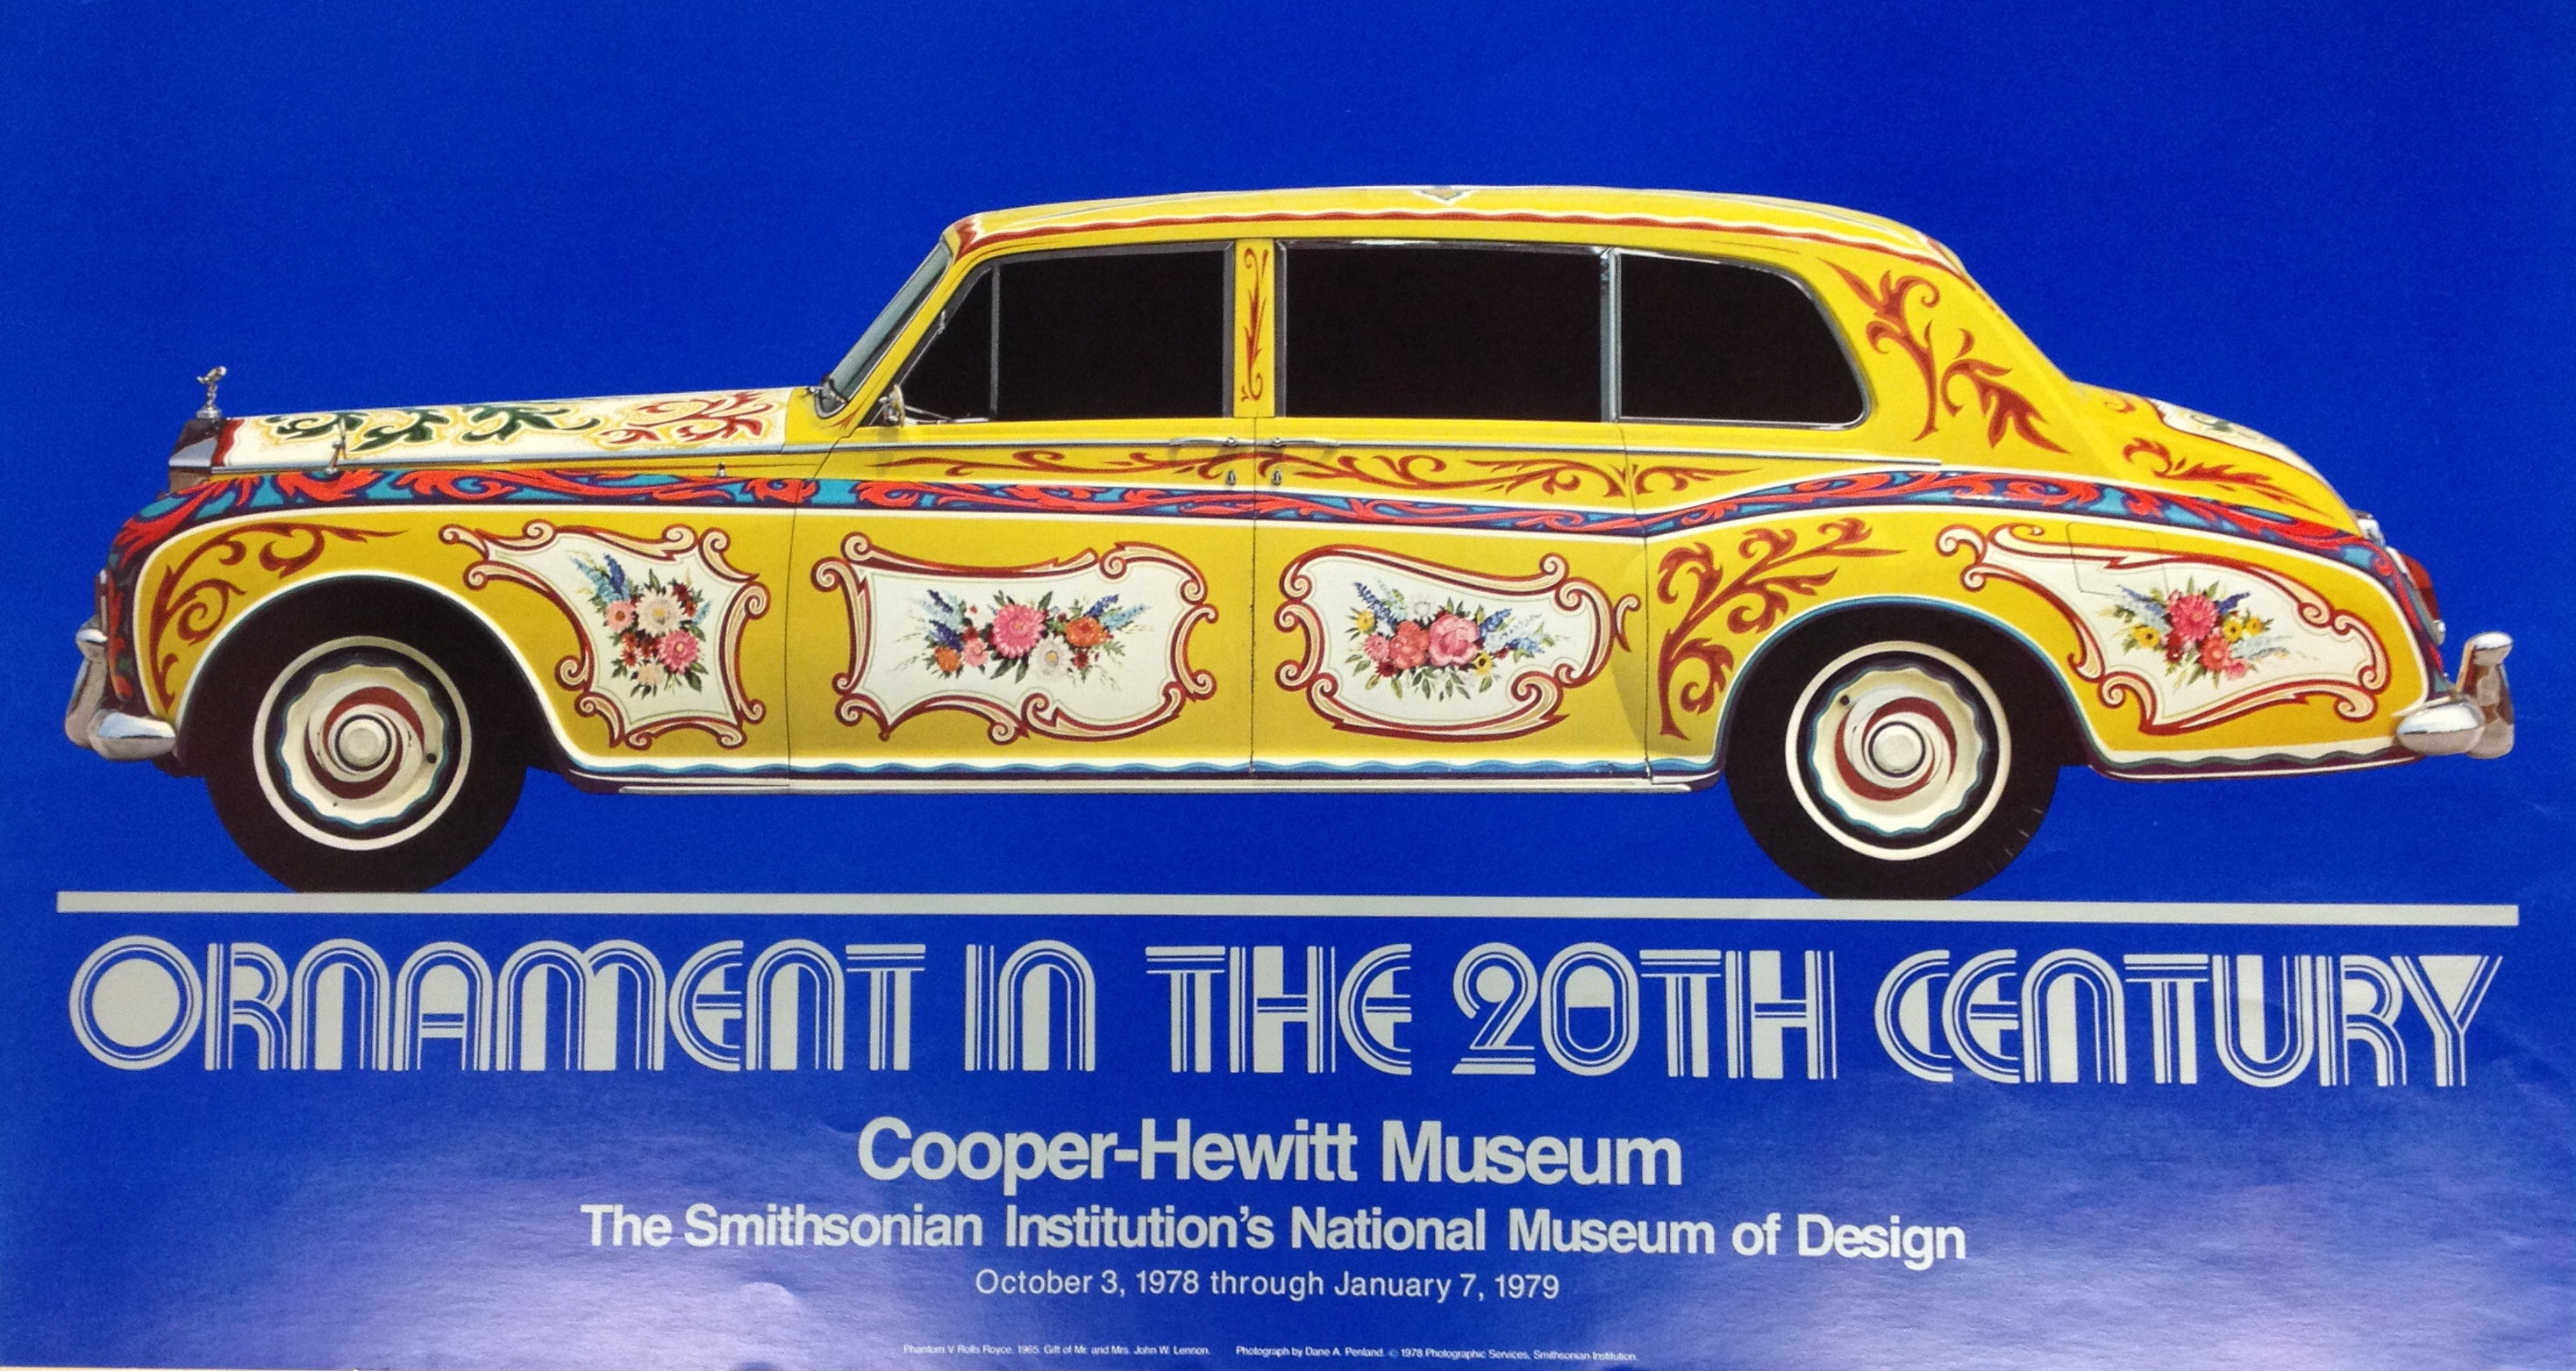 """Ornament in the 20th Century"" exhibition poster."